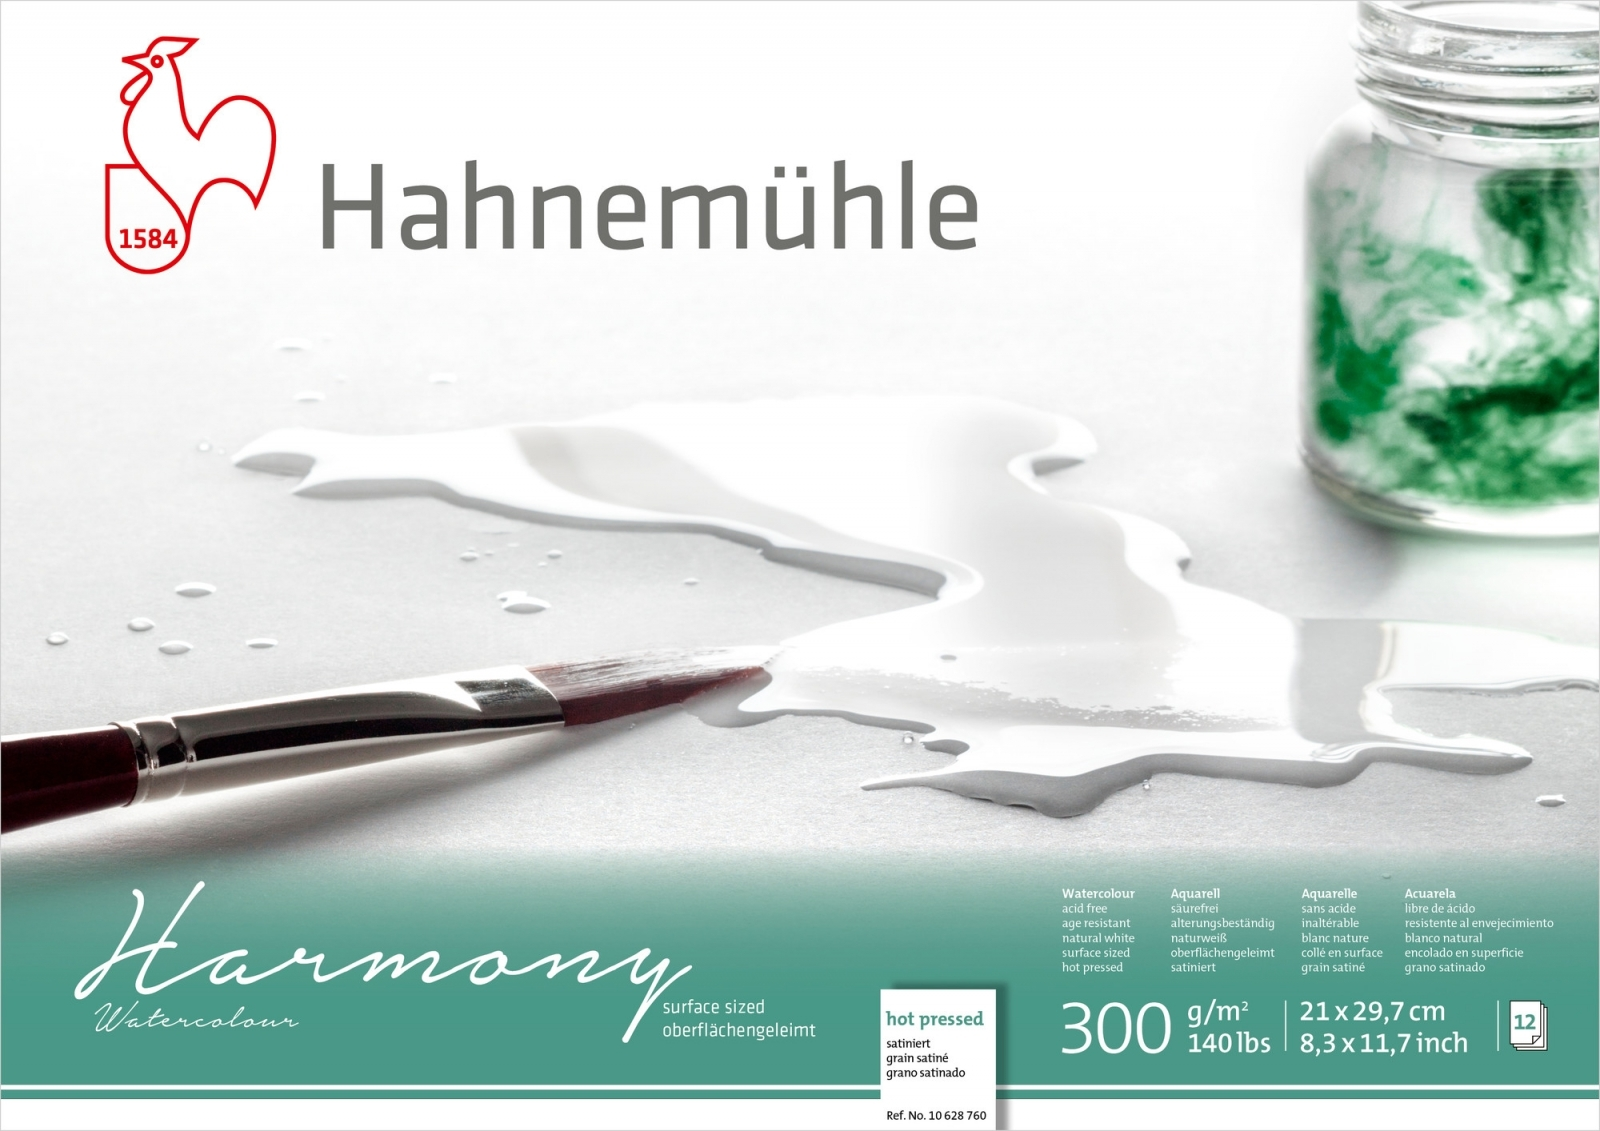 PAPEL HAHNEMUHLE HARMONY WATERCOLOUR, 300 G/M², HOT PRESSED 12fls 21X29,7cm - A4 (10628760) - Papelaria Botafogo